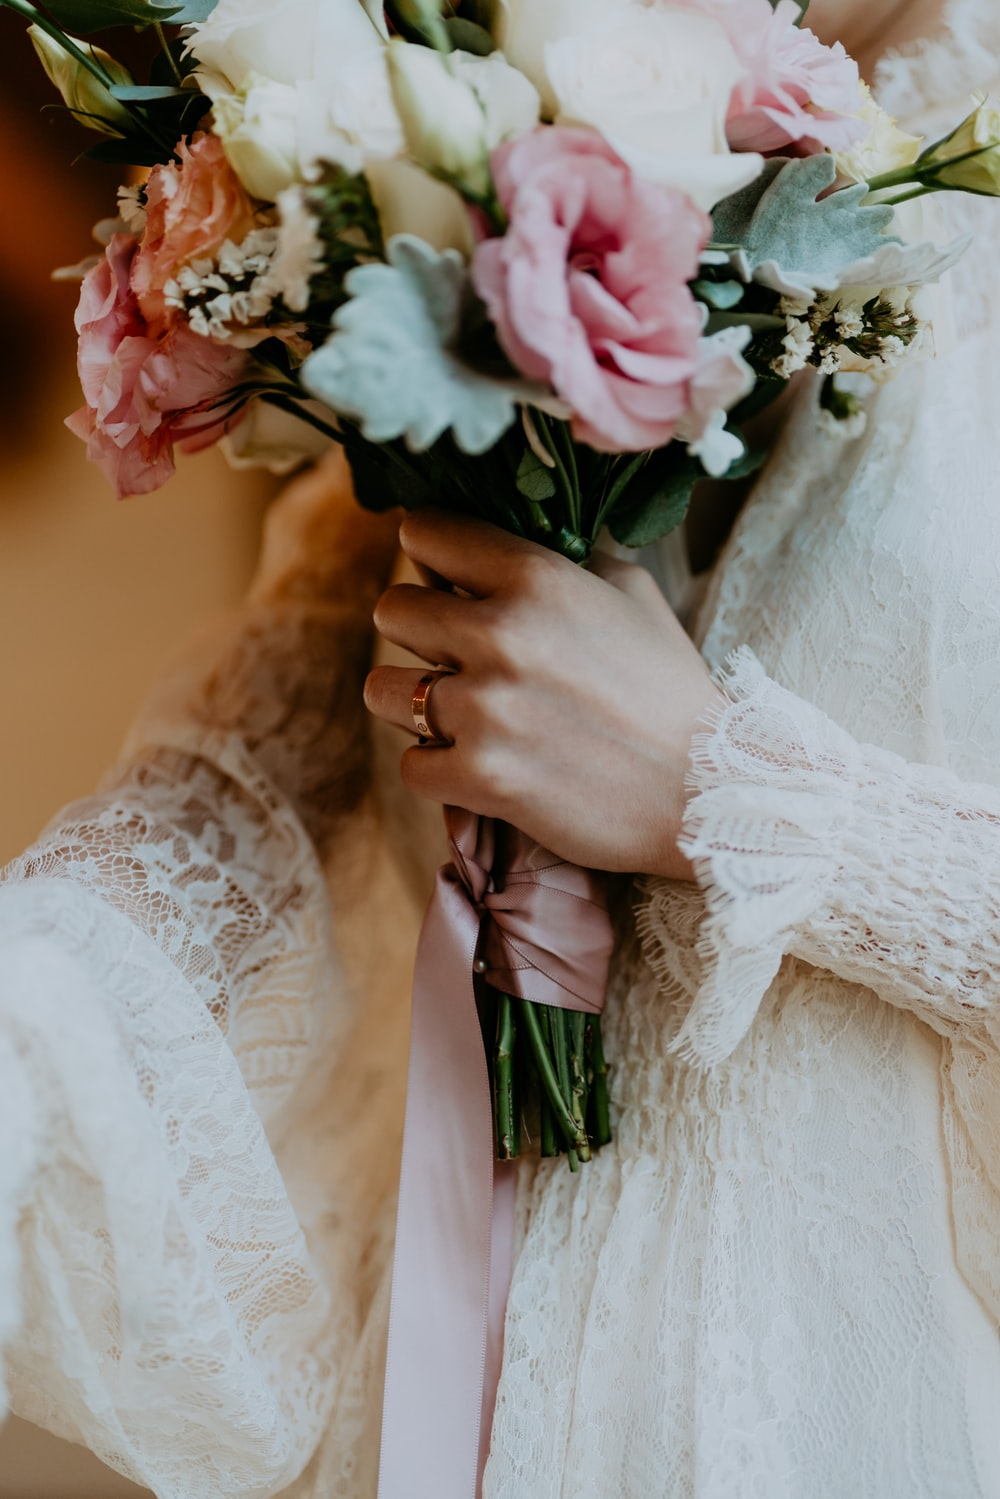 woman in white wedding dress holding white and pink flower bouquet